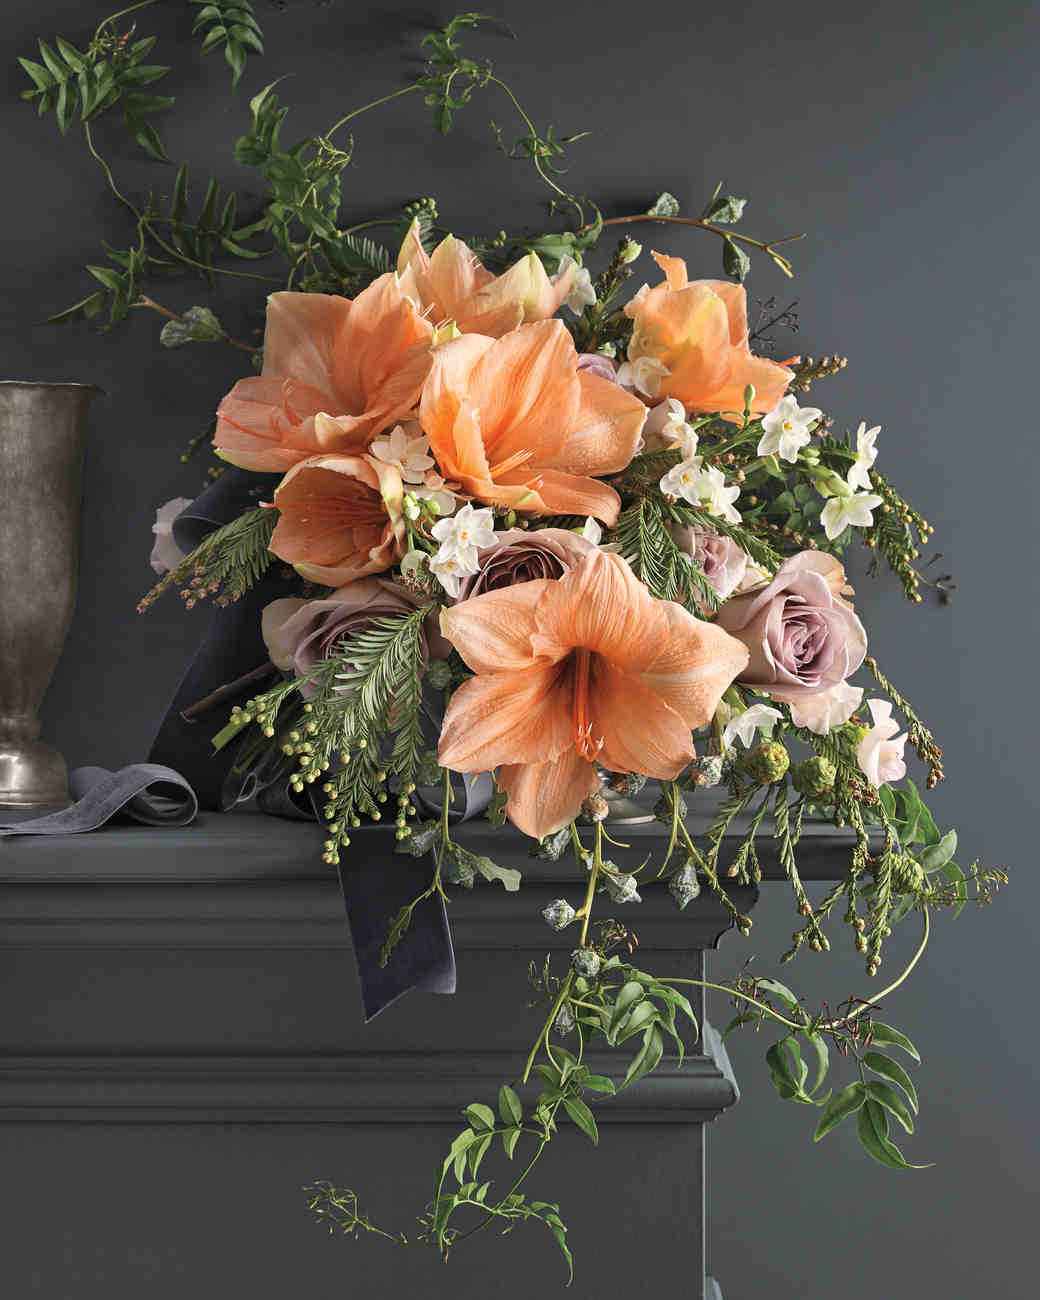 8 bouquets inspired by the most popular wedding flowers martha stewart weddings. Black Bedroom Furniture Sets. Home Design Ideas